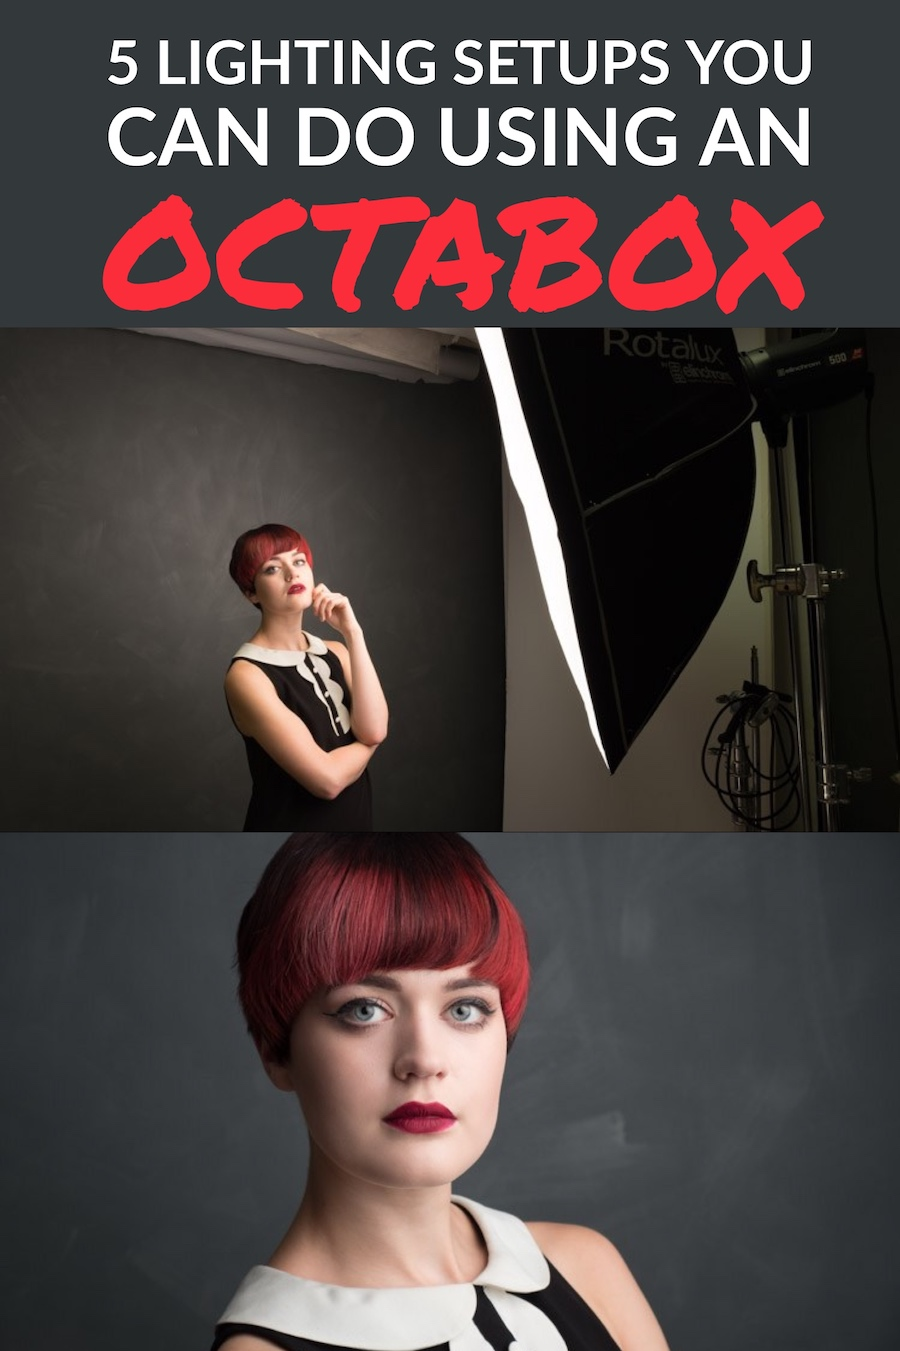 5 Lighting Setups You Can Do Using an Octabox